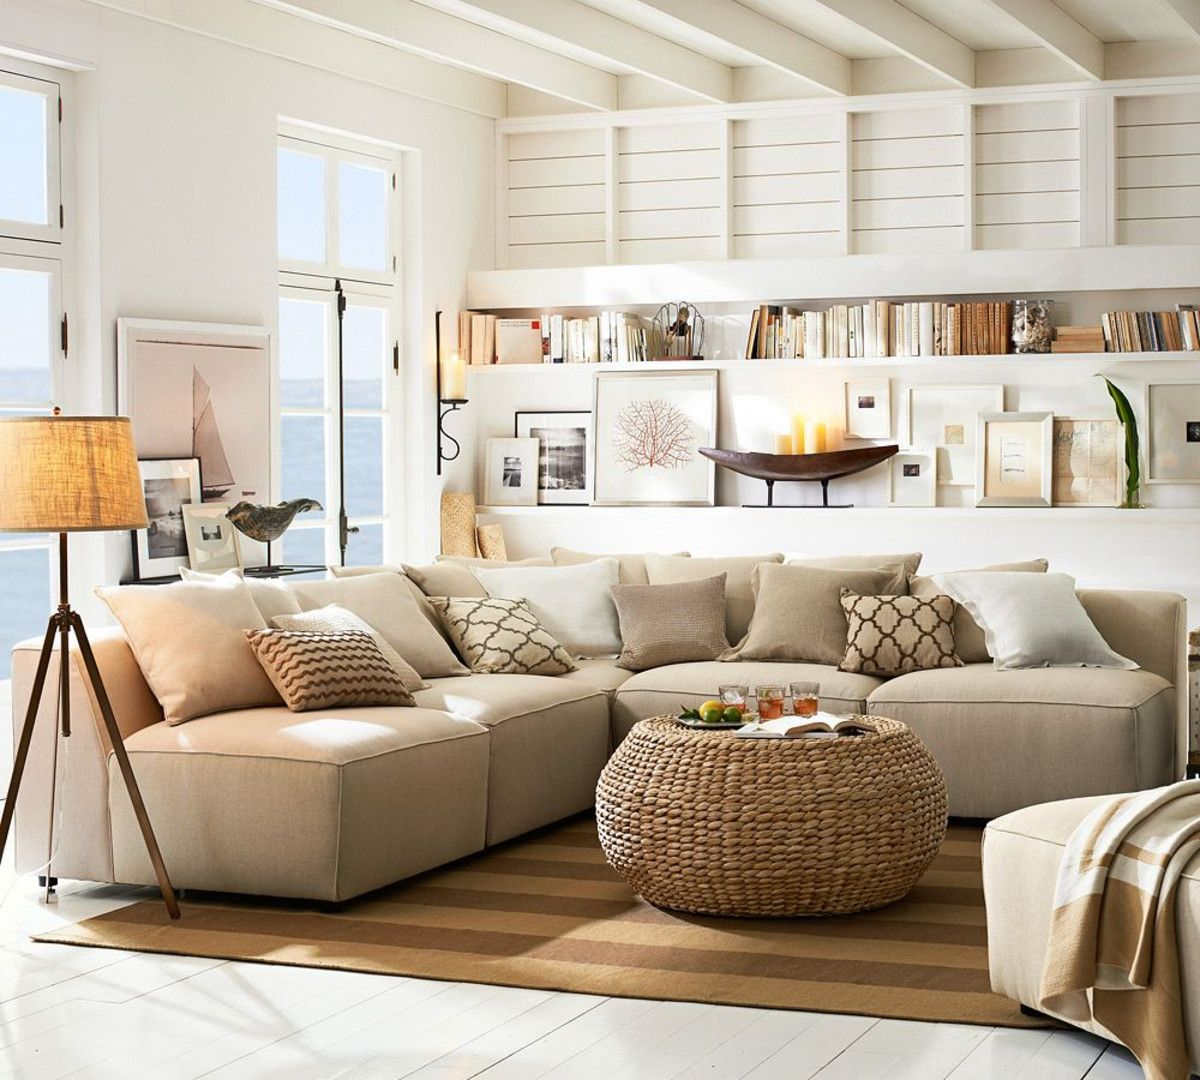 Hampton style sittng room - Pottery Barn AU | My Style. Future home ...